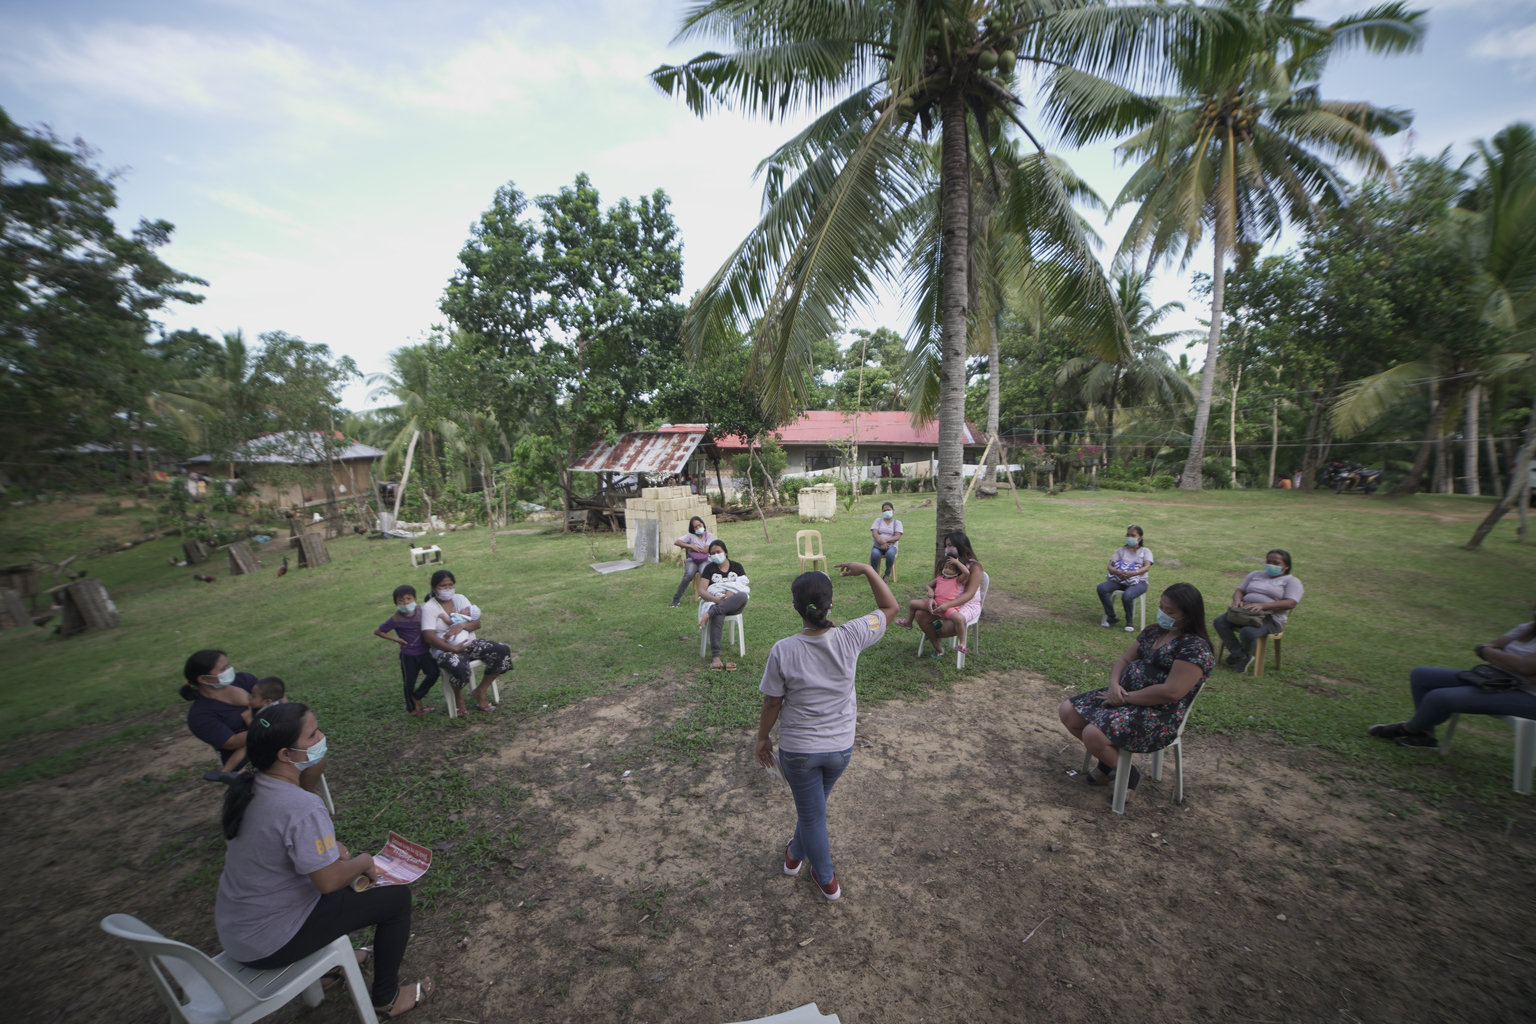 A maternal health trainers speaks to a group outside under palm trees during a mother-to-mother support group in the Philippines